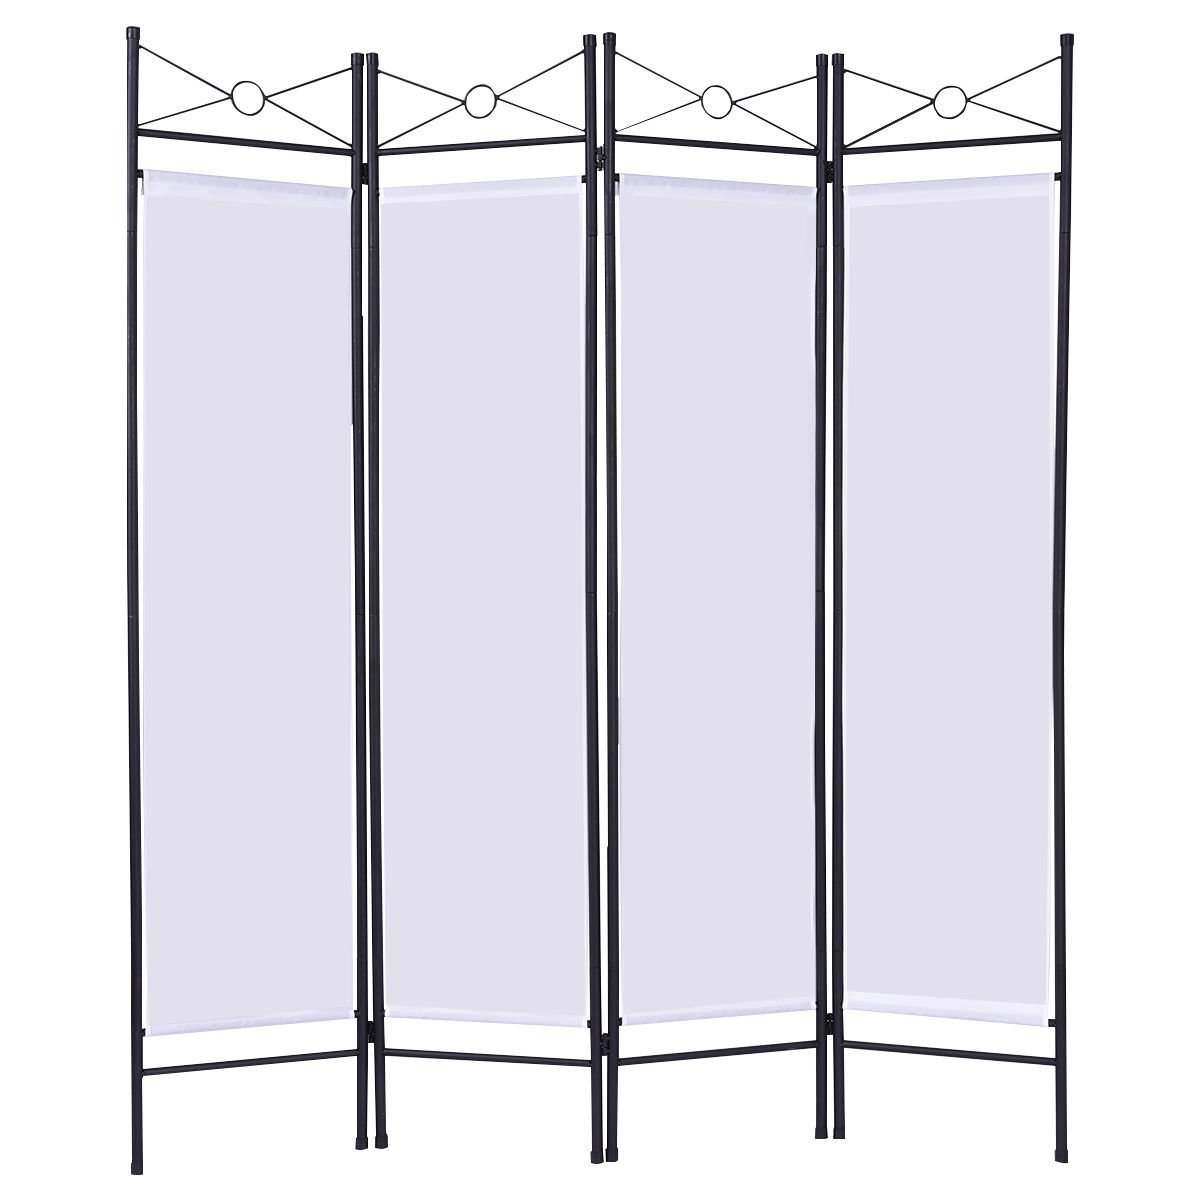 4 white 4 Panel Room Divider Privacy Folding Screen Home Fabric Metal Frame For provide you a privacy space in your home, office or other place.